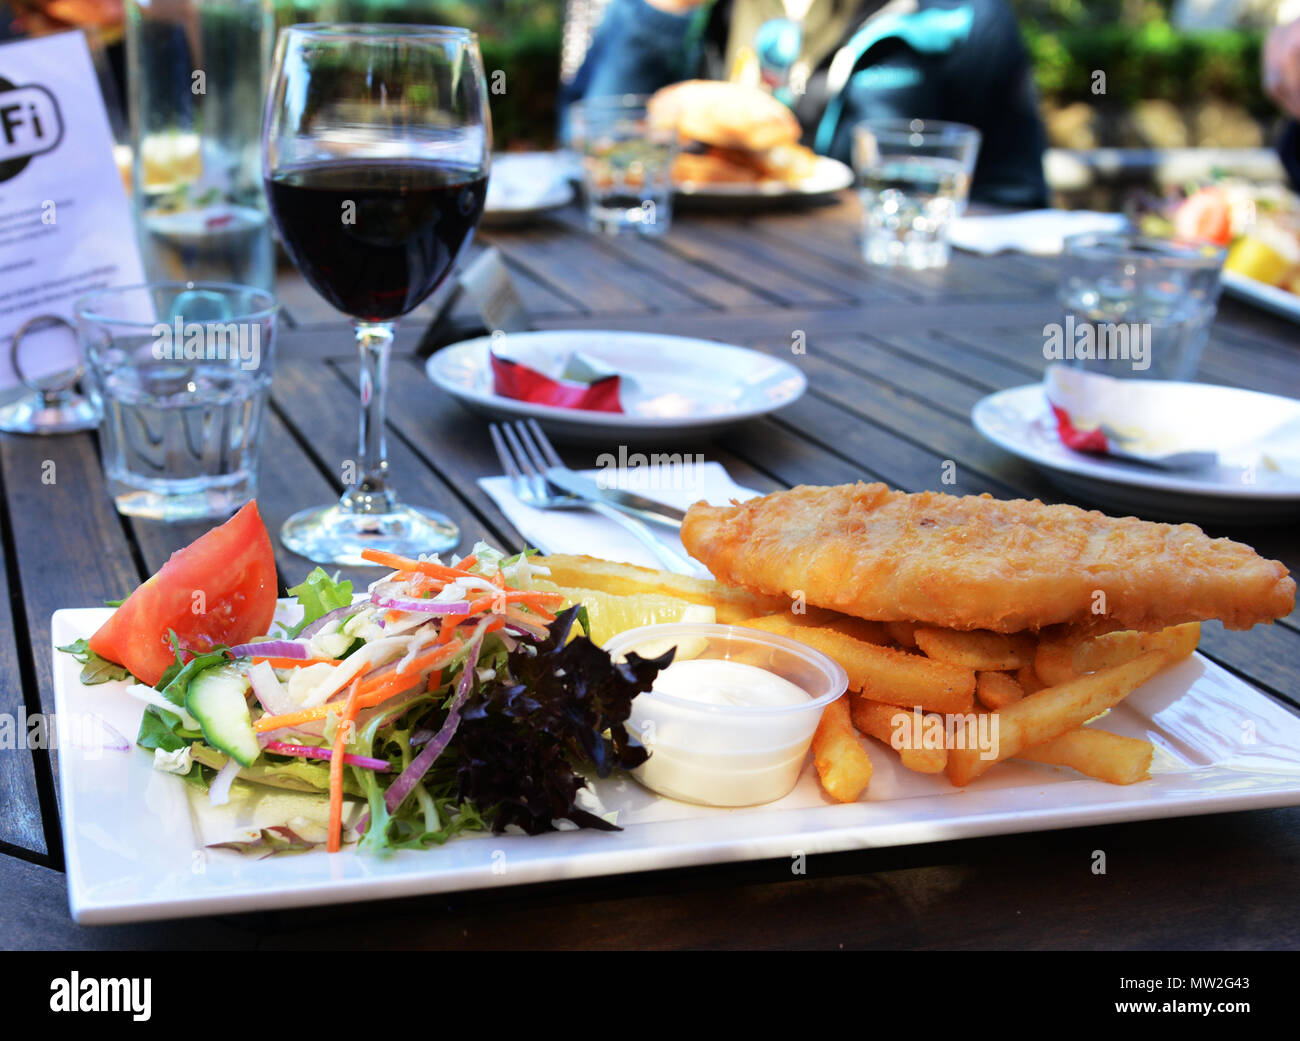 9ff493187b8 A barramundi fish and chips dish served with salad and a glass of red wine.